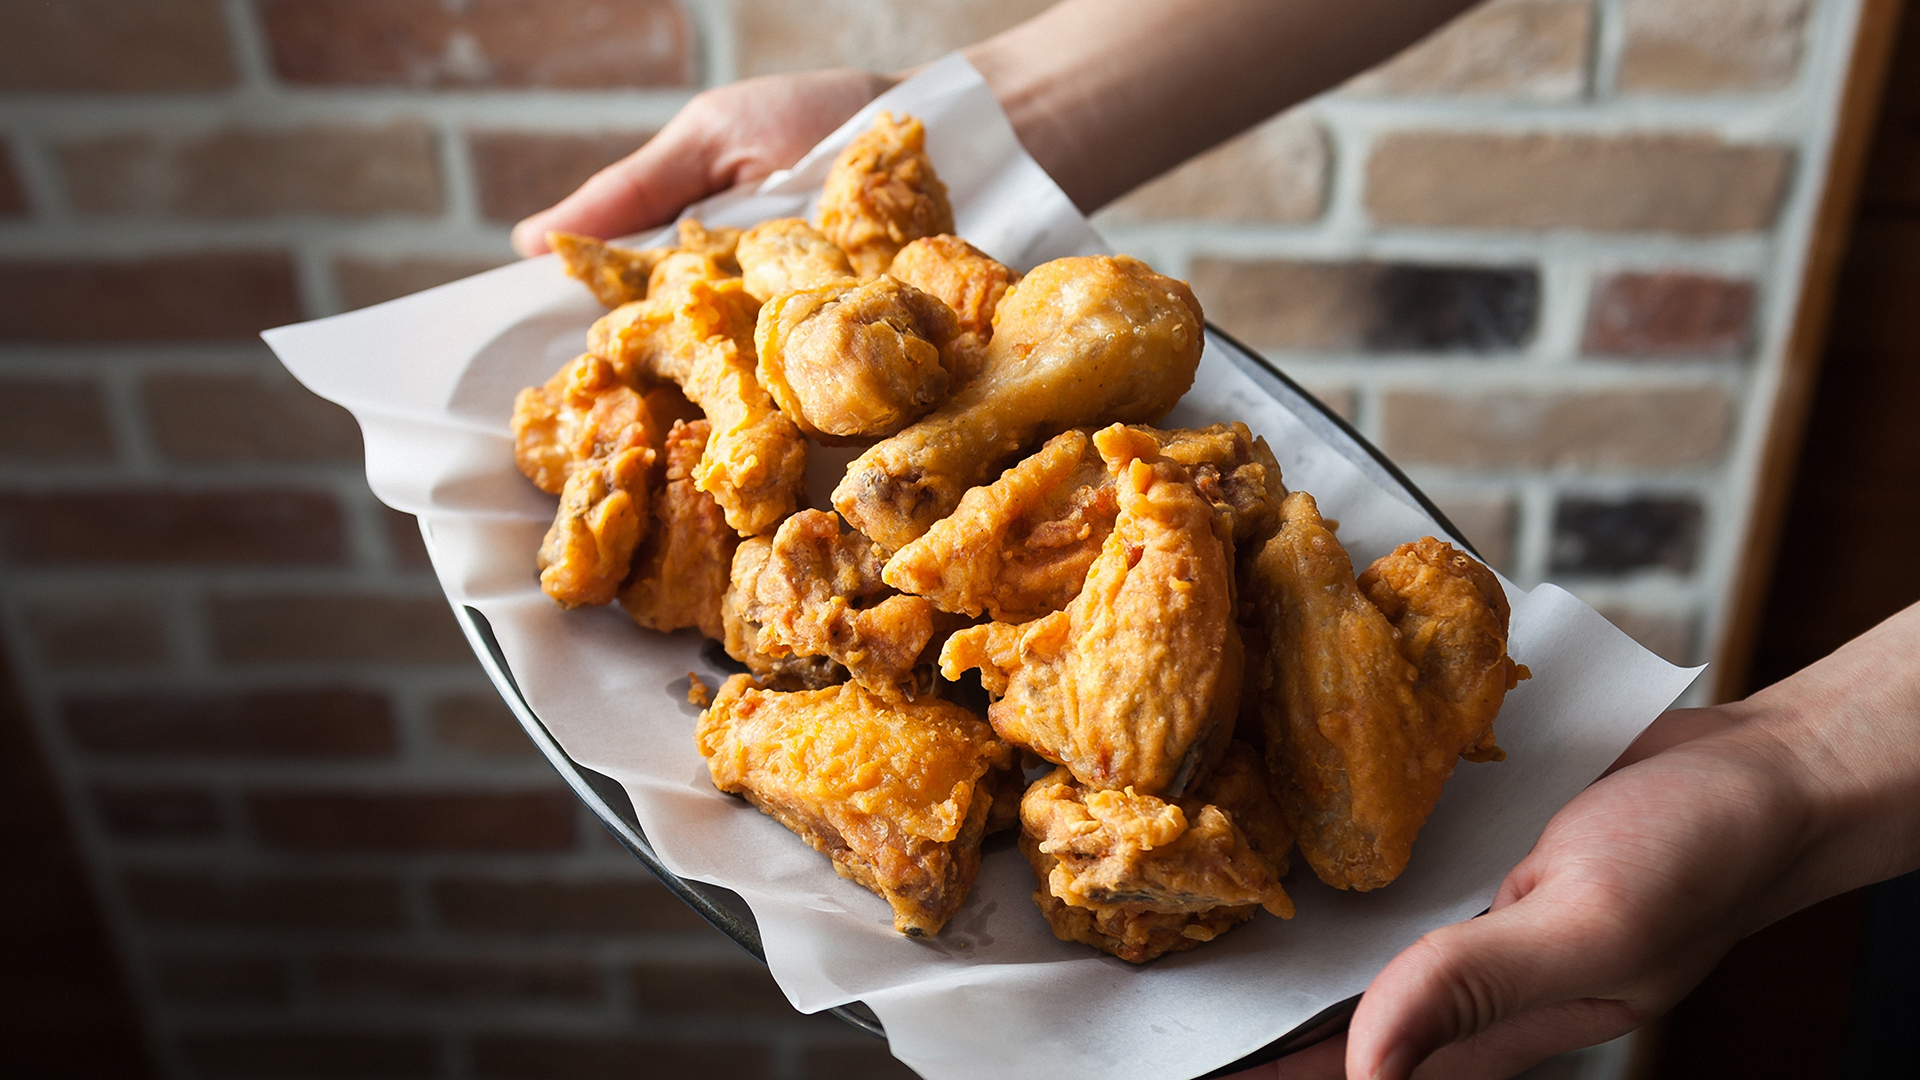 6 tips for the best fried chicken of your life - TODAY.com